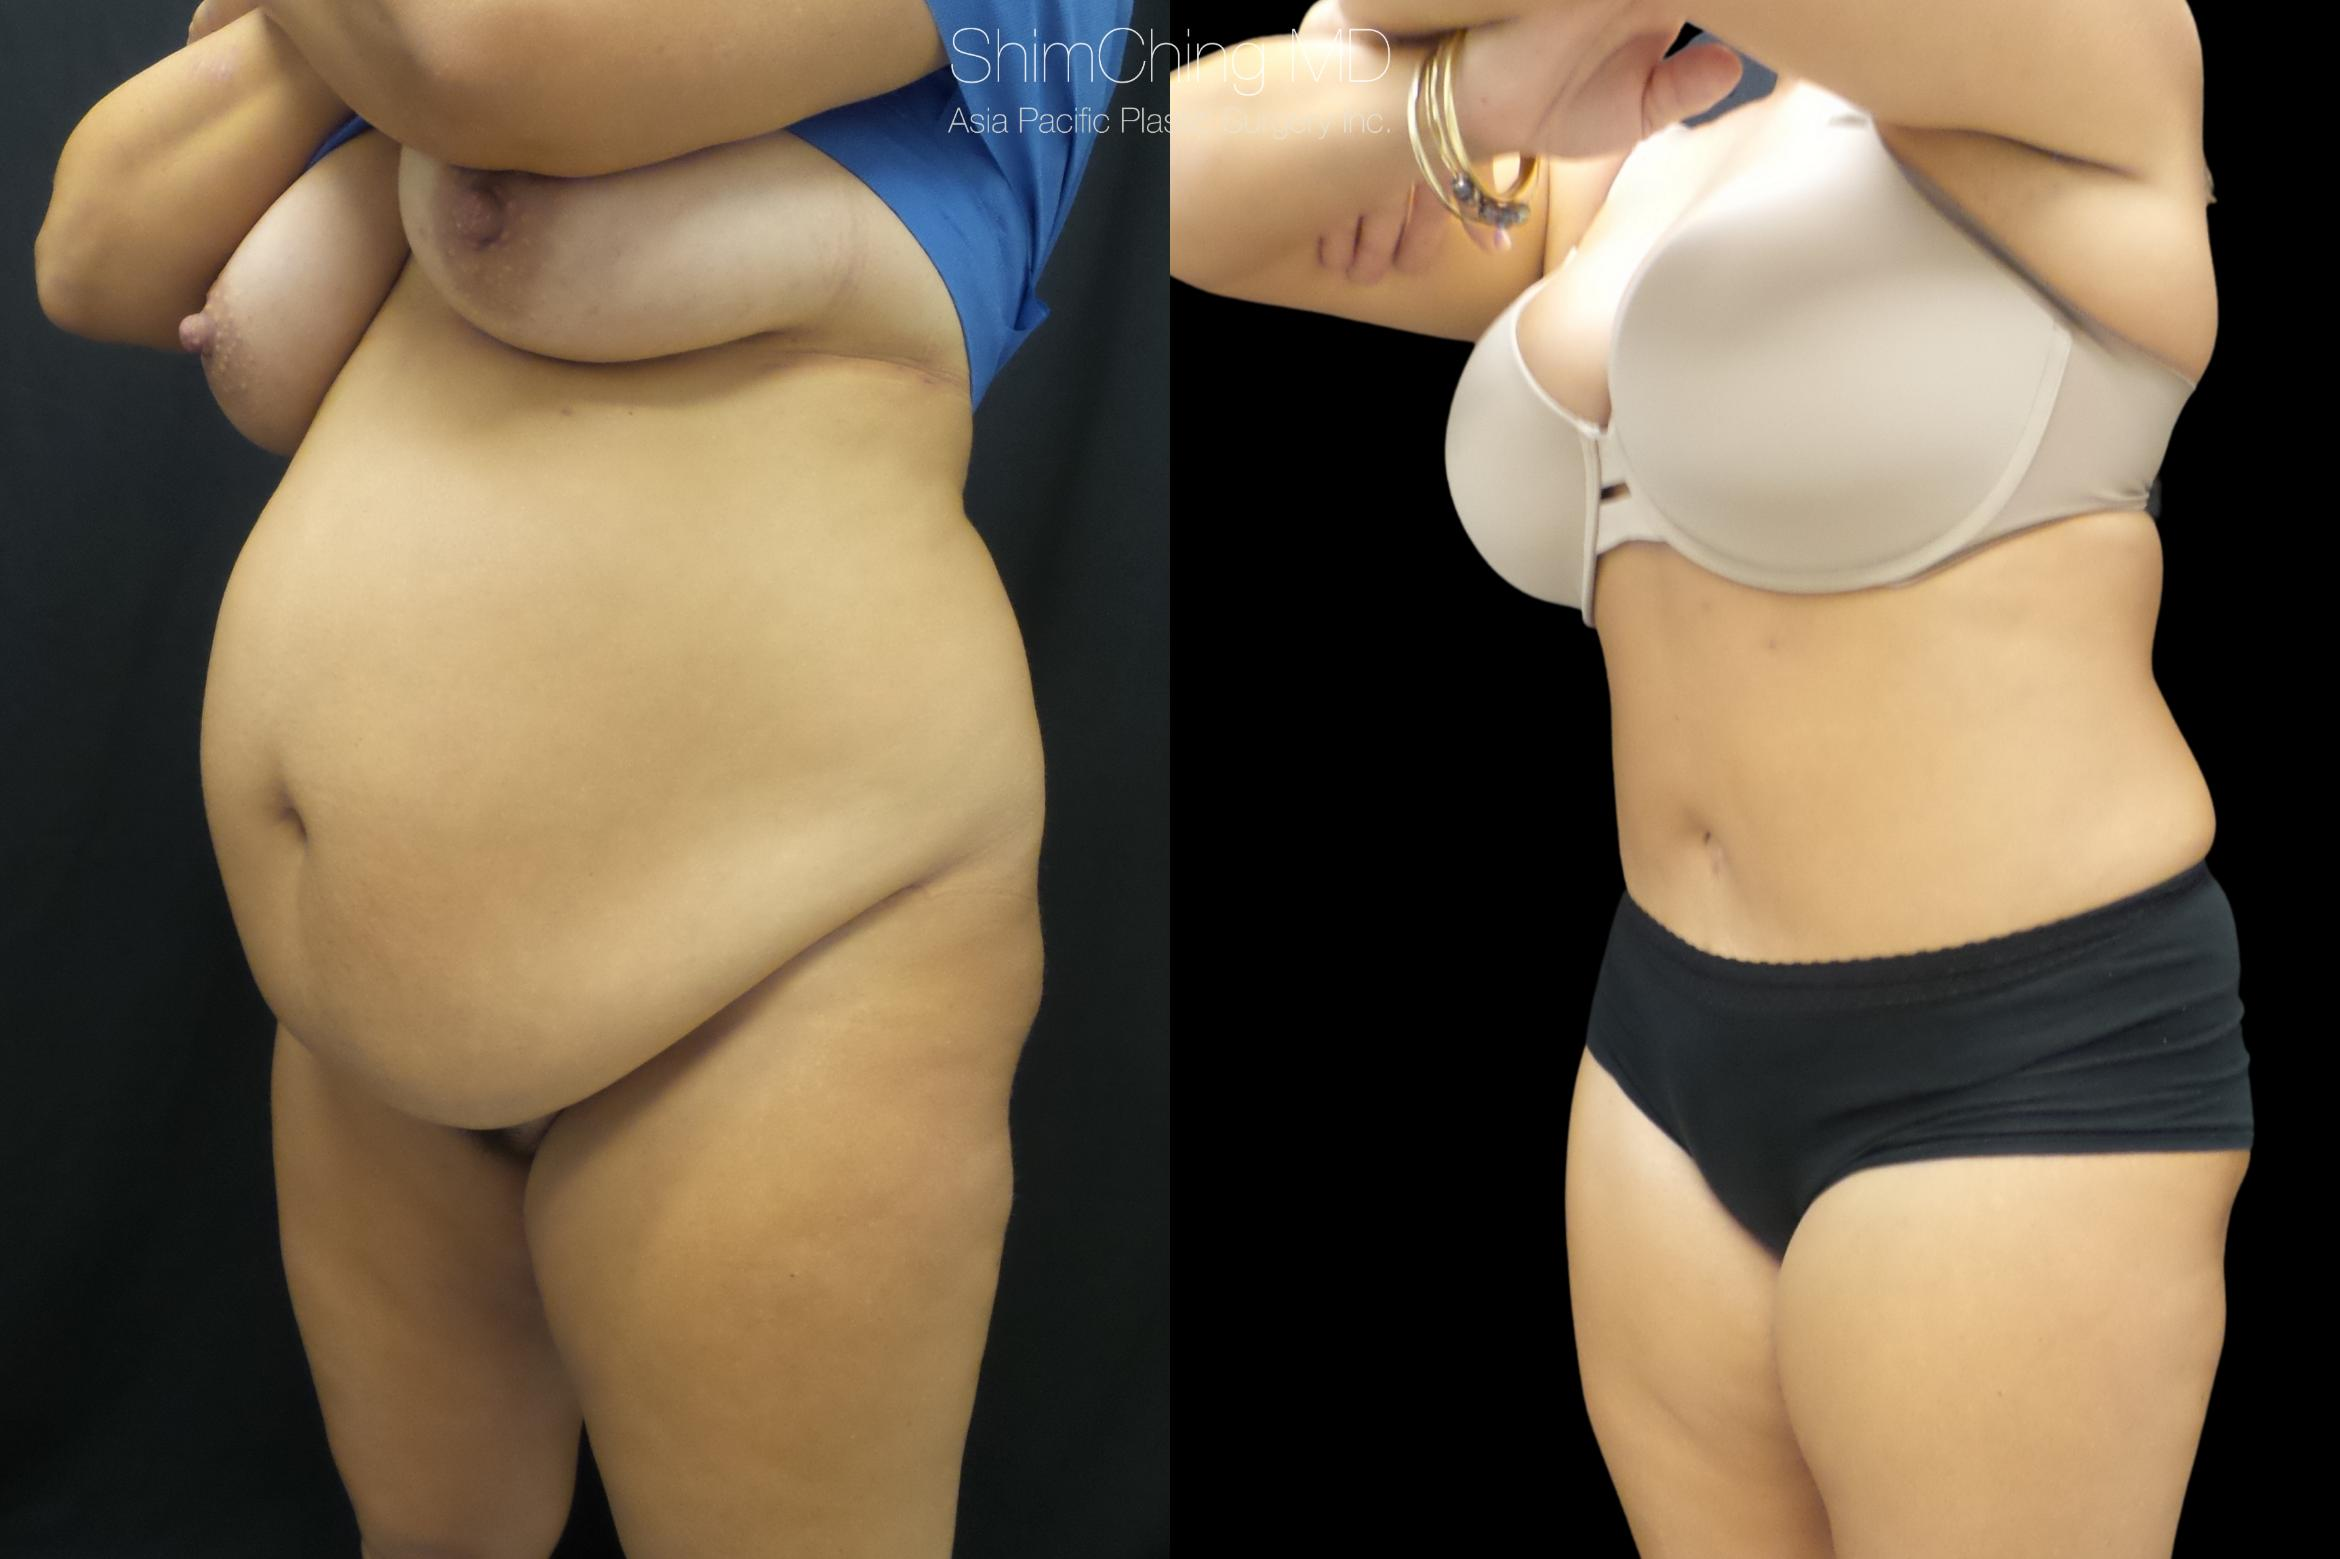 Abdominoplasty Case 301 Before & After Right Oblique | Honolulu, HI | Shim Ching, MD: Asia Pacific Plastic Surgery